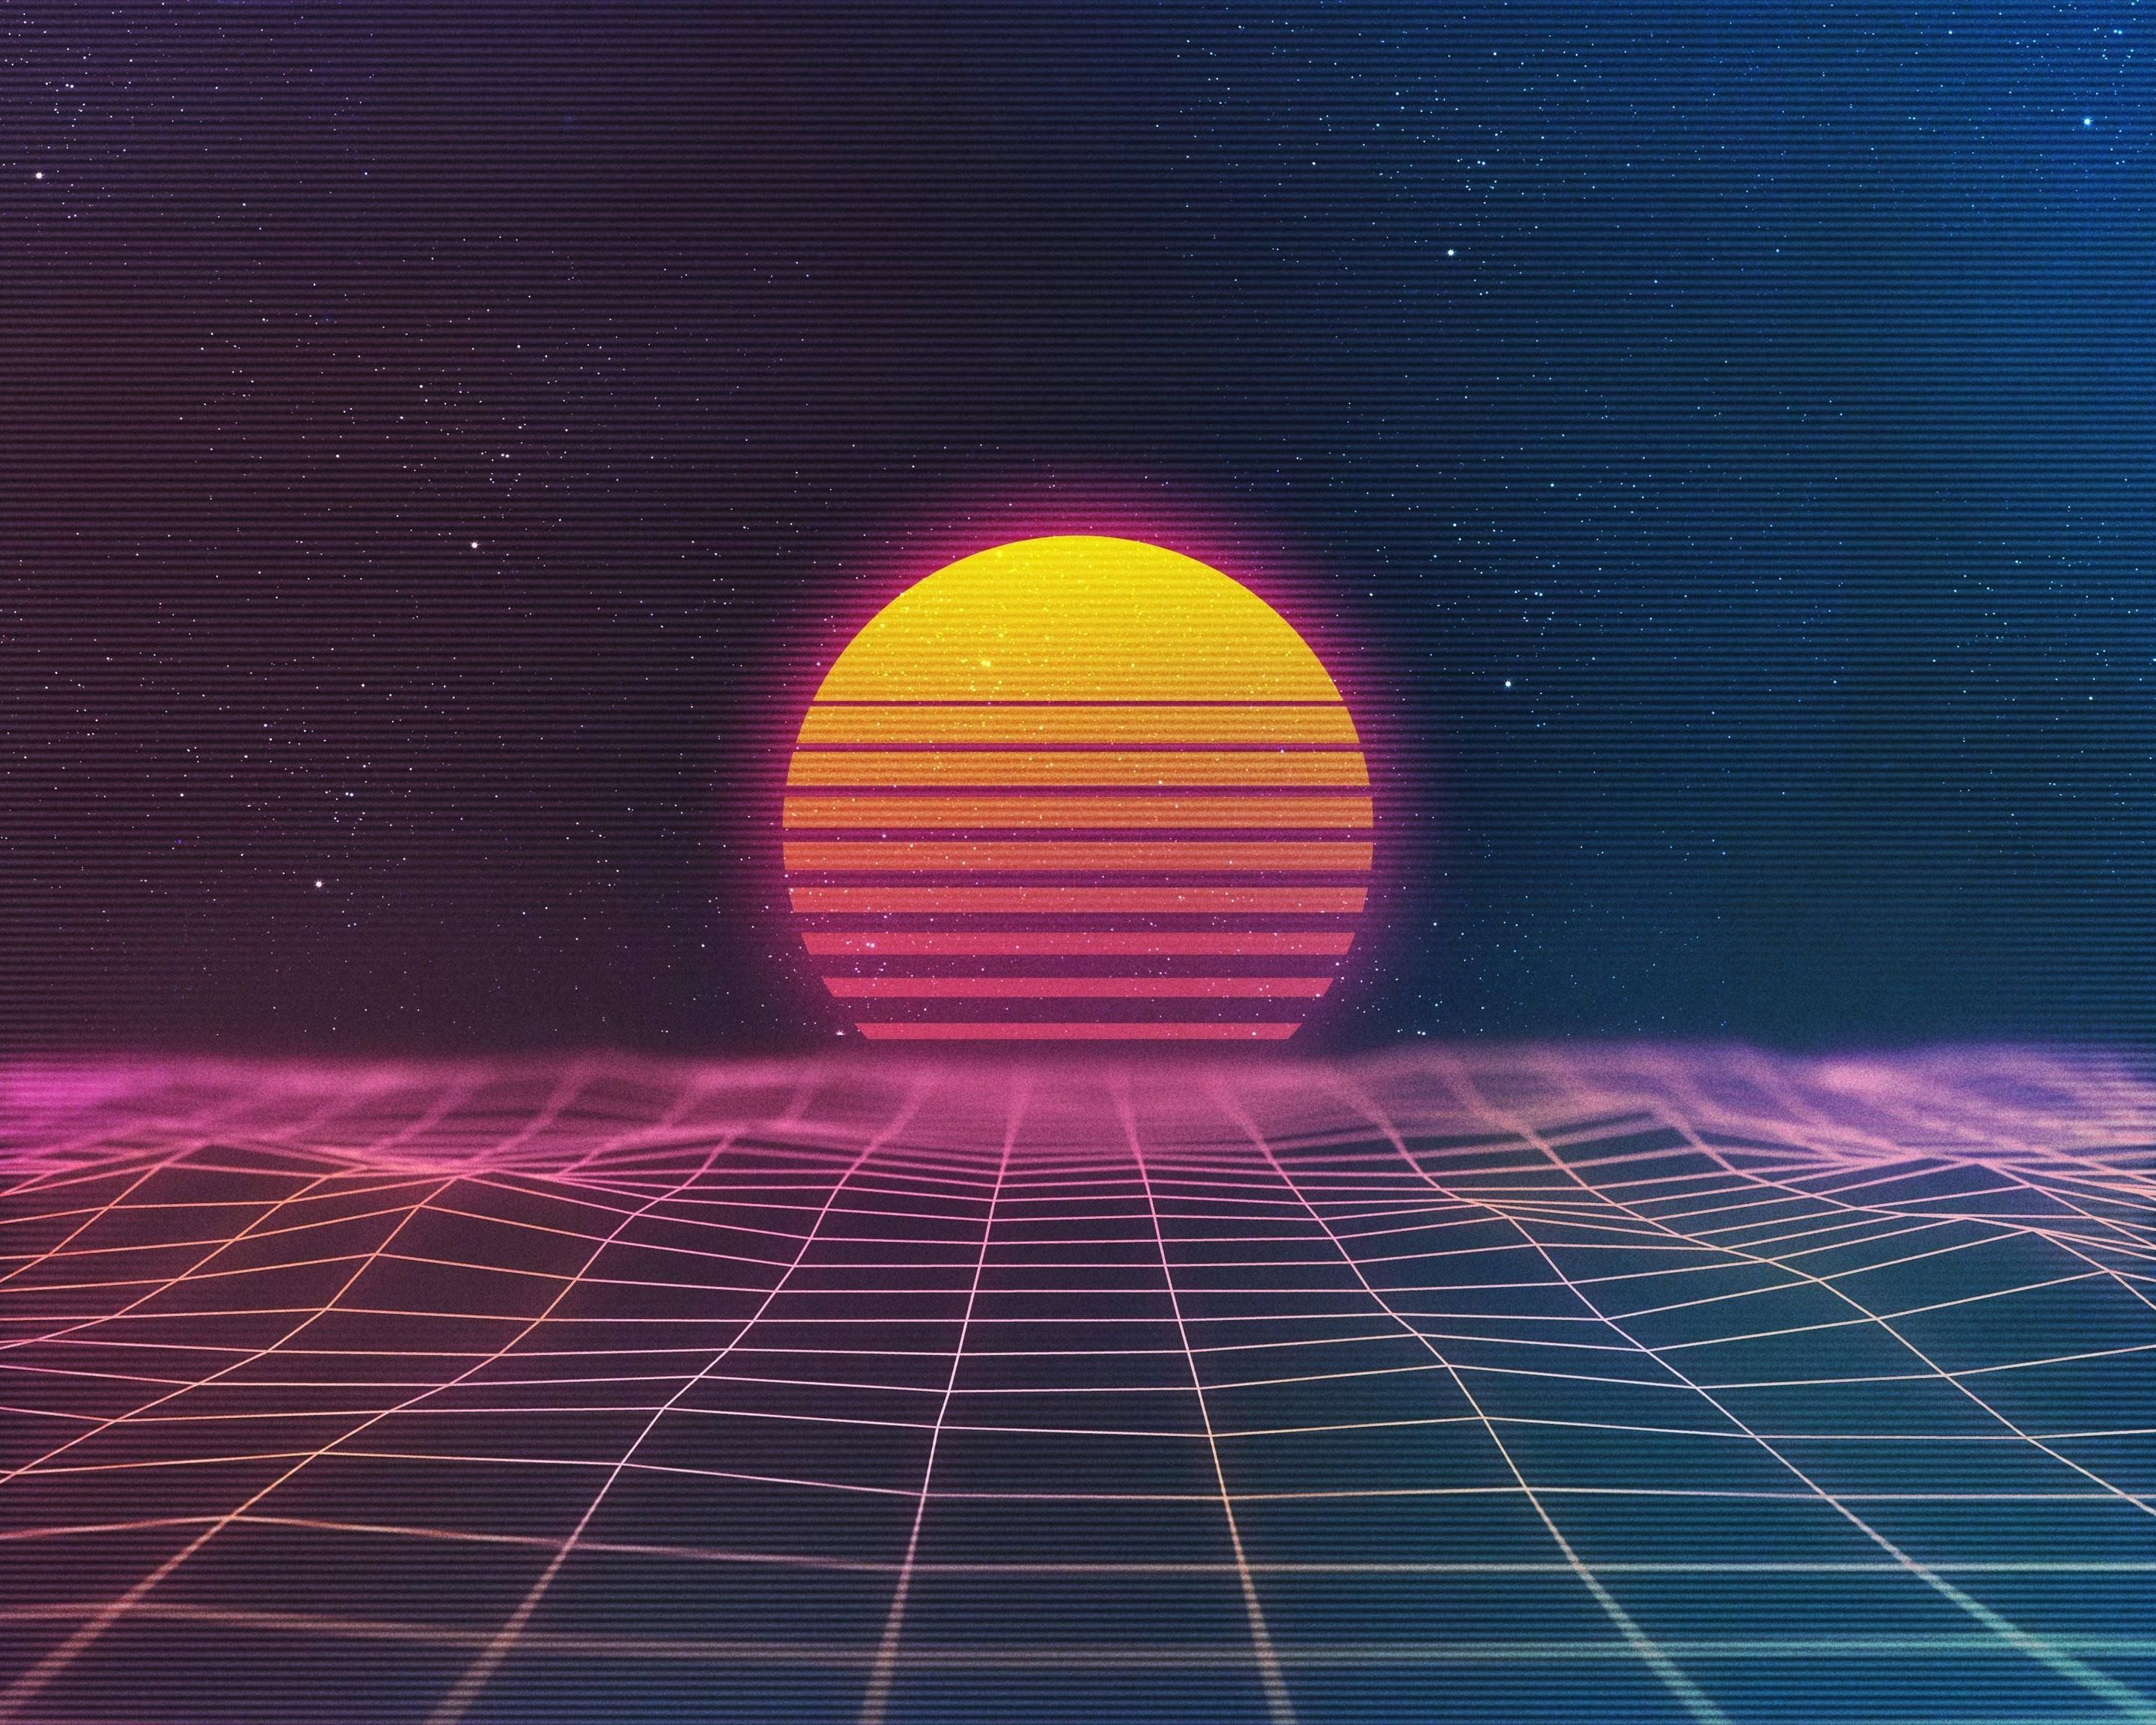 Retro Sunset Wallpapers Top Free Retro Sunset Backgrounds Wallpaperaccess